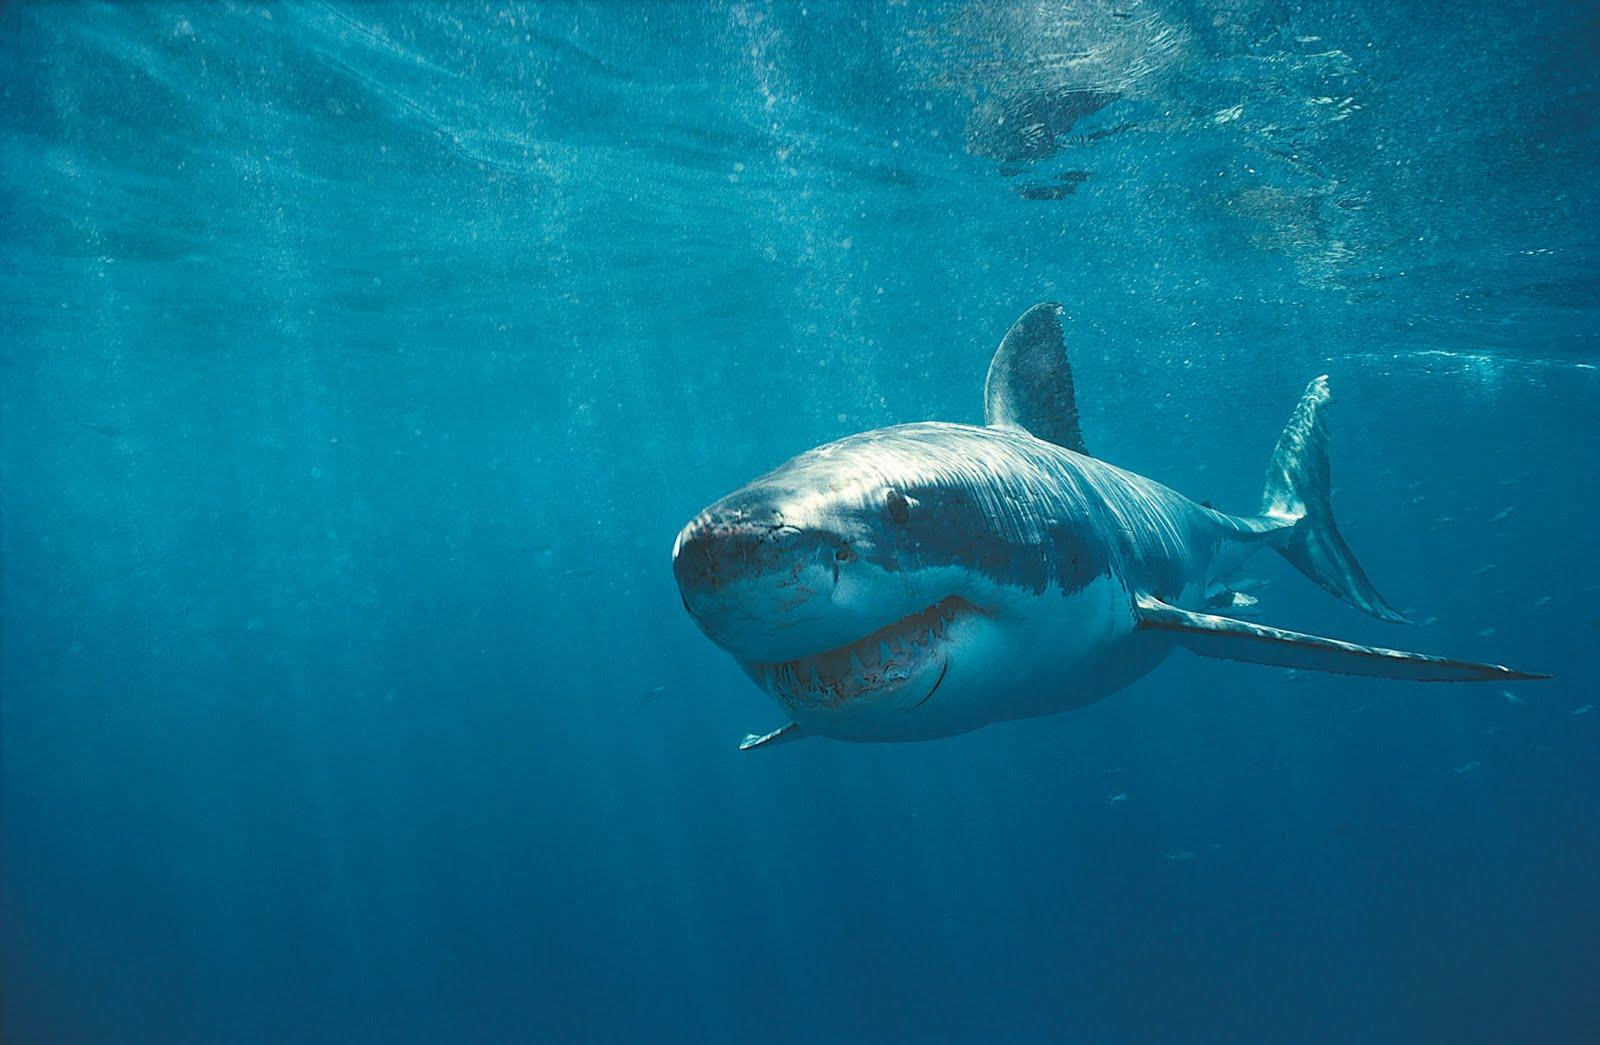 Animals For > Shark Wallpaper Hd